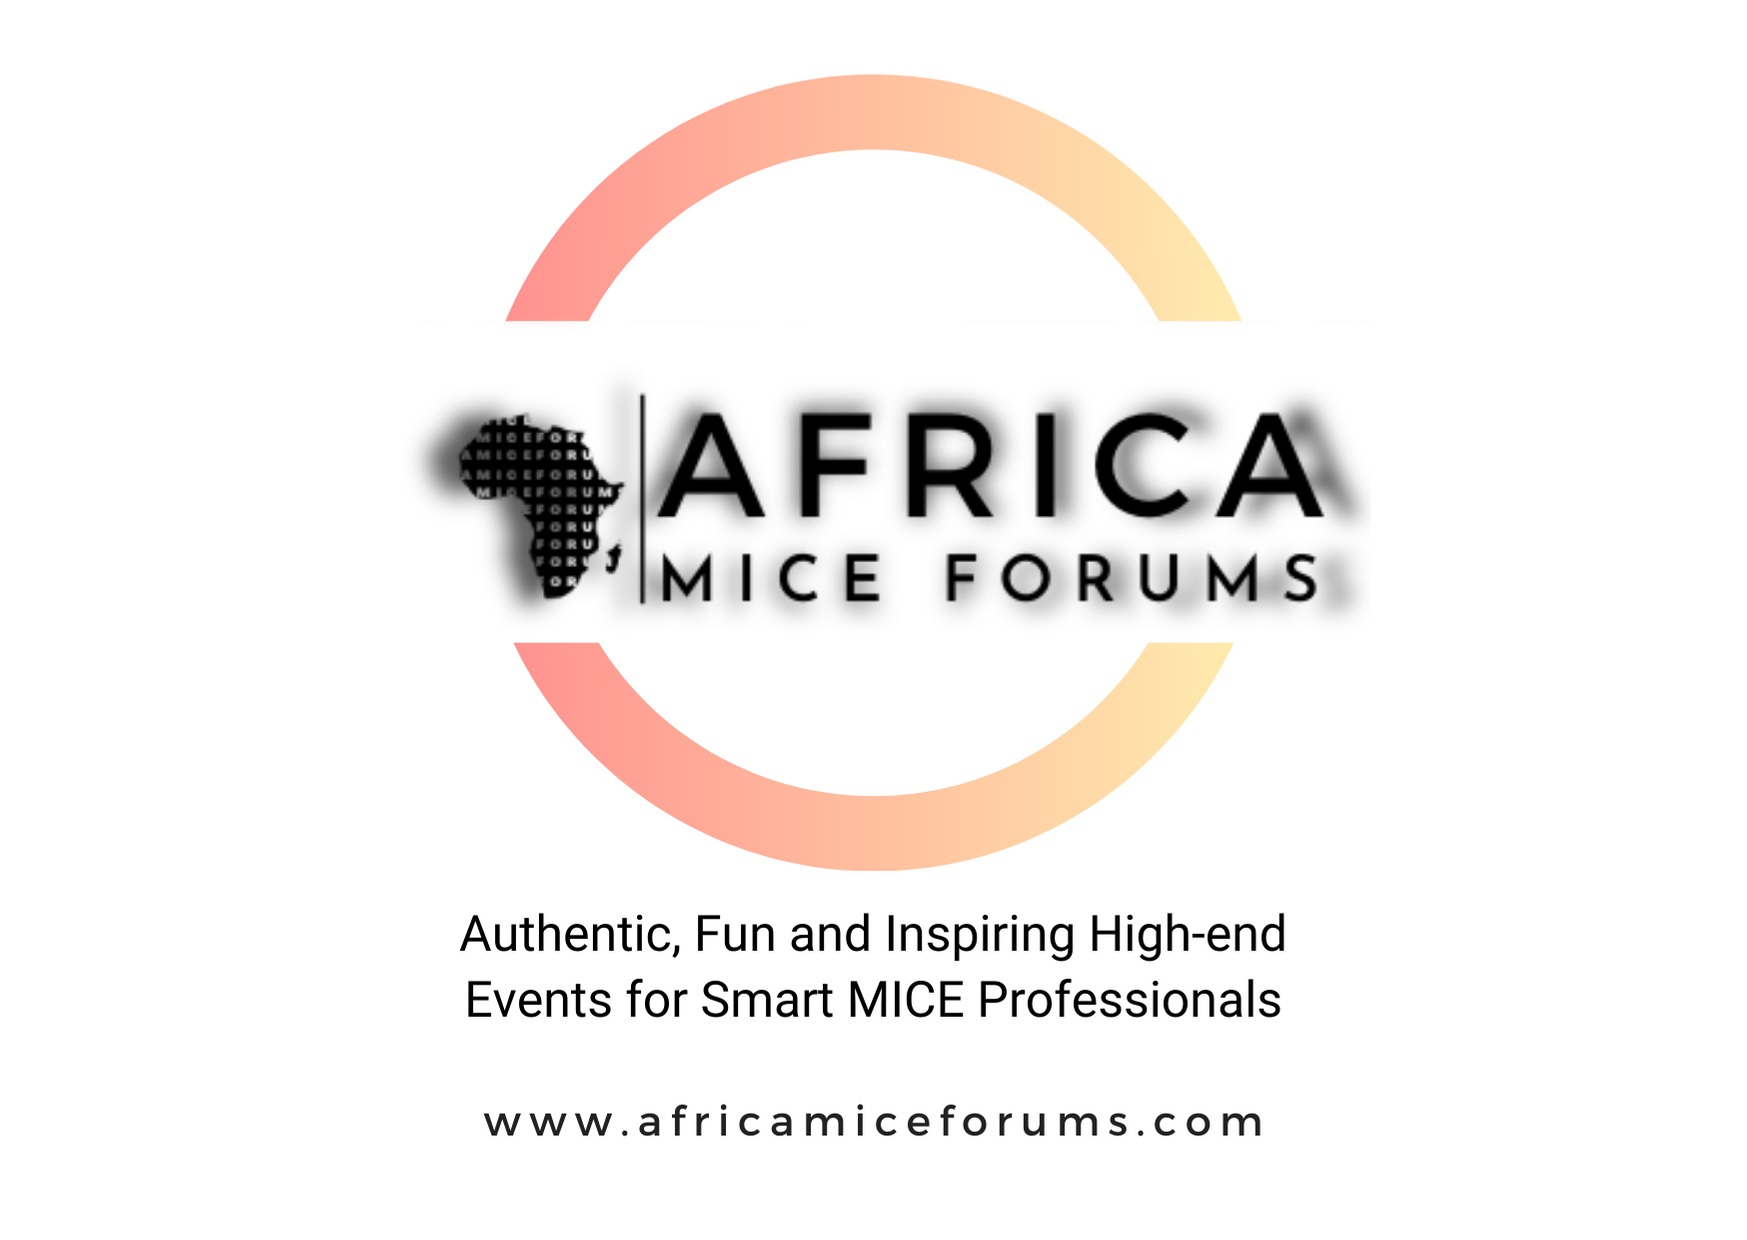 Africa MICE Forums to kick off in Calabar in October - Conference and Meetings World